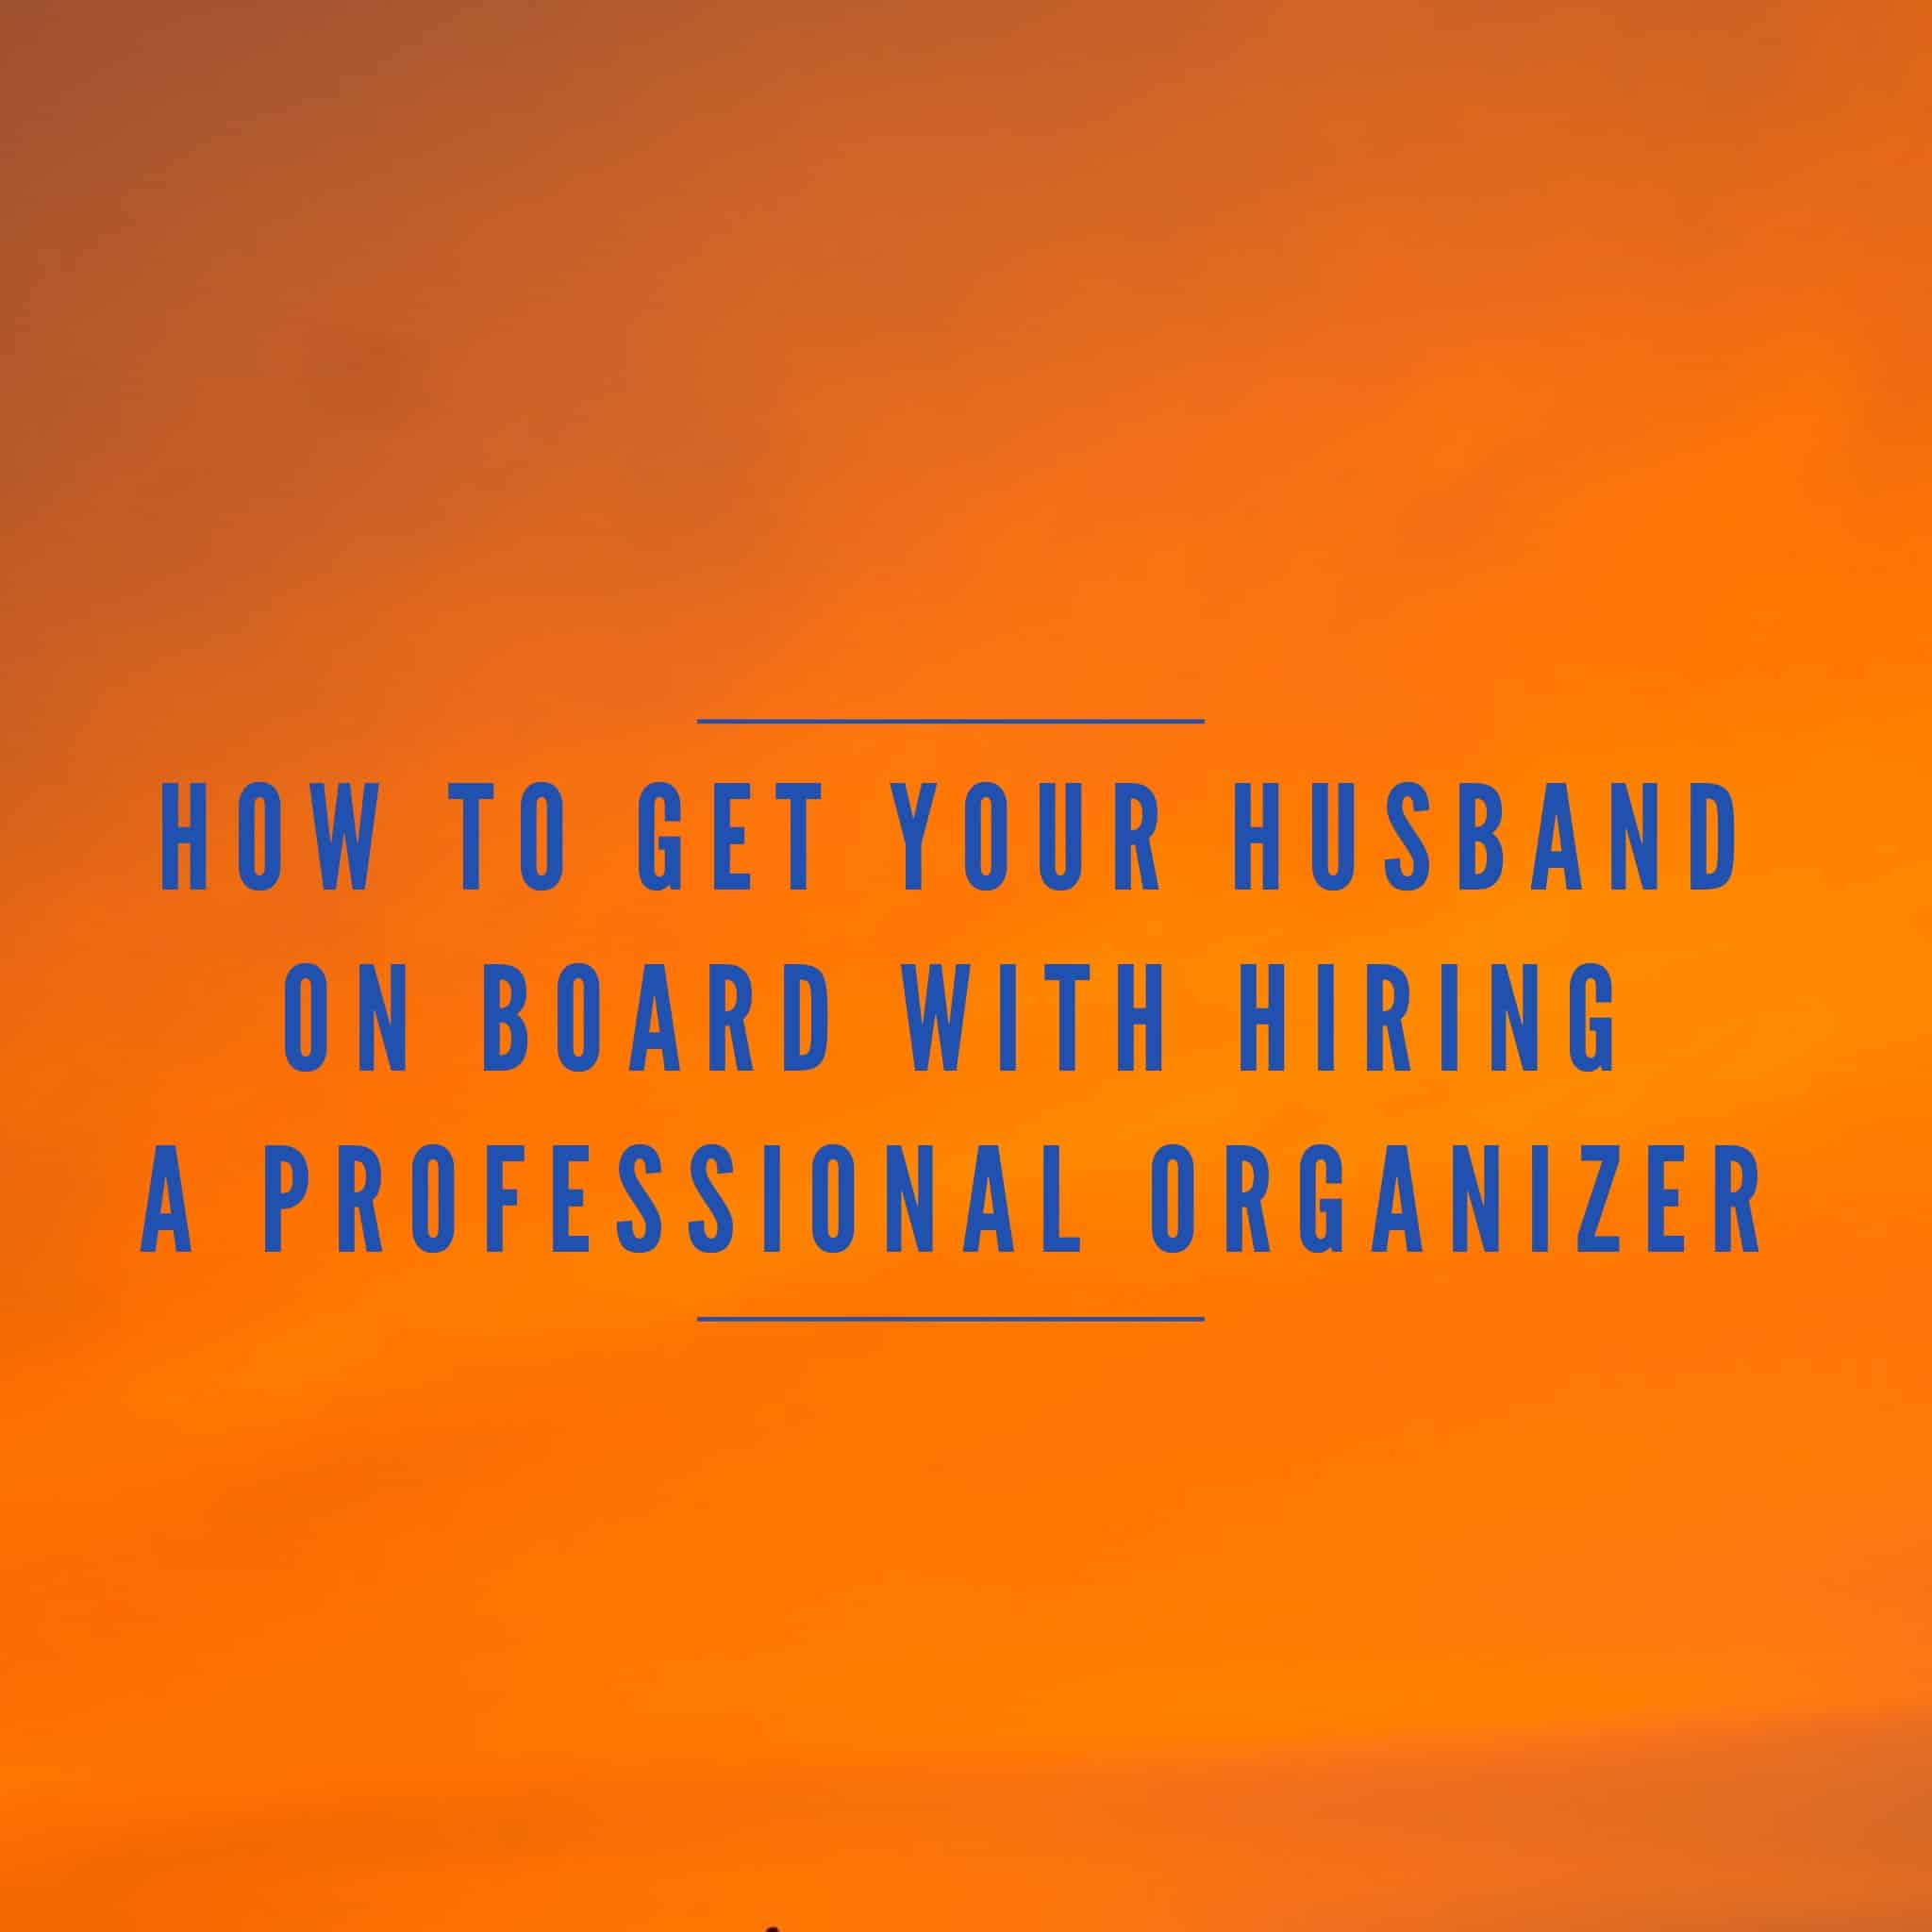 How to Get Your Husband on Board with Hiring a Professional Organizer